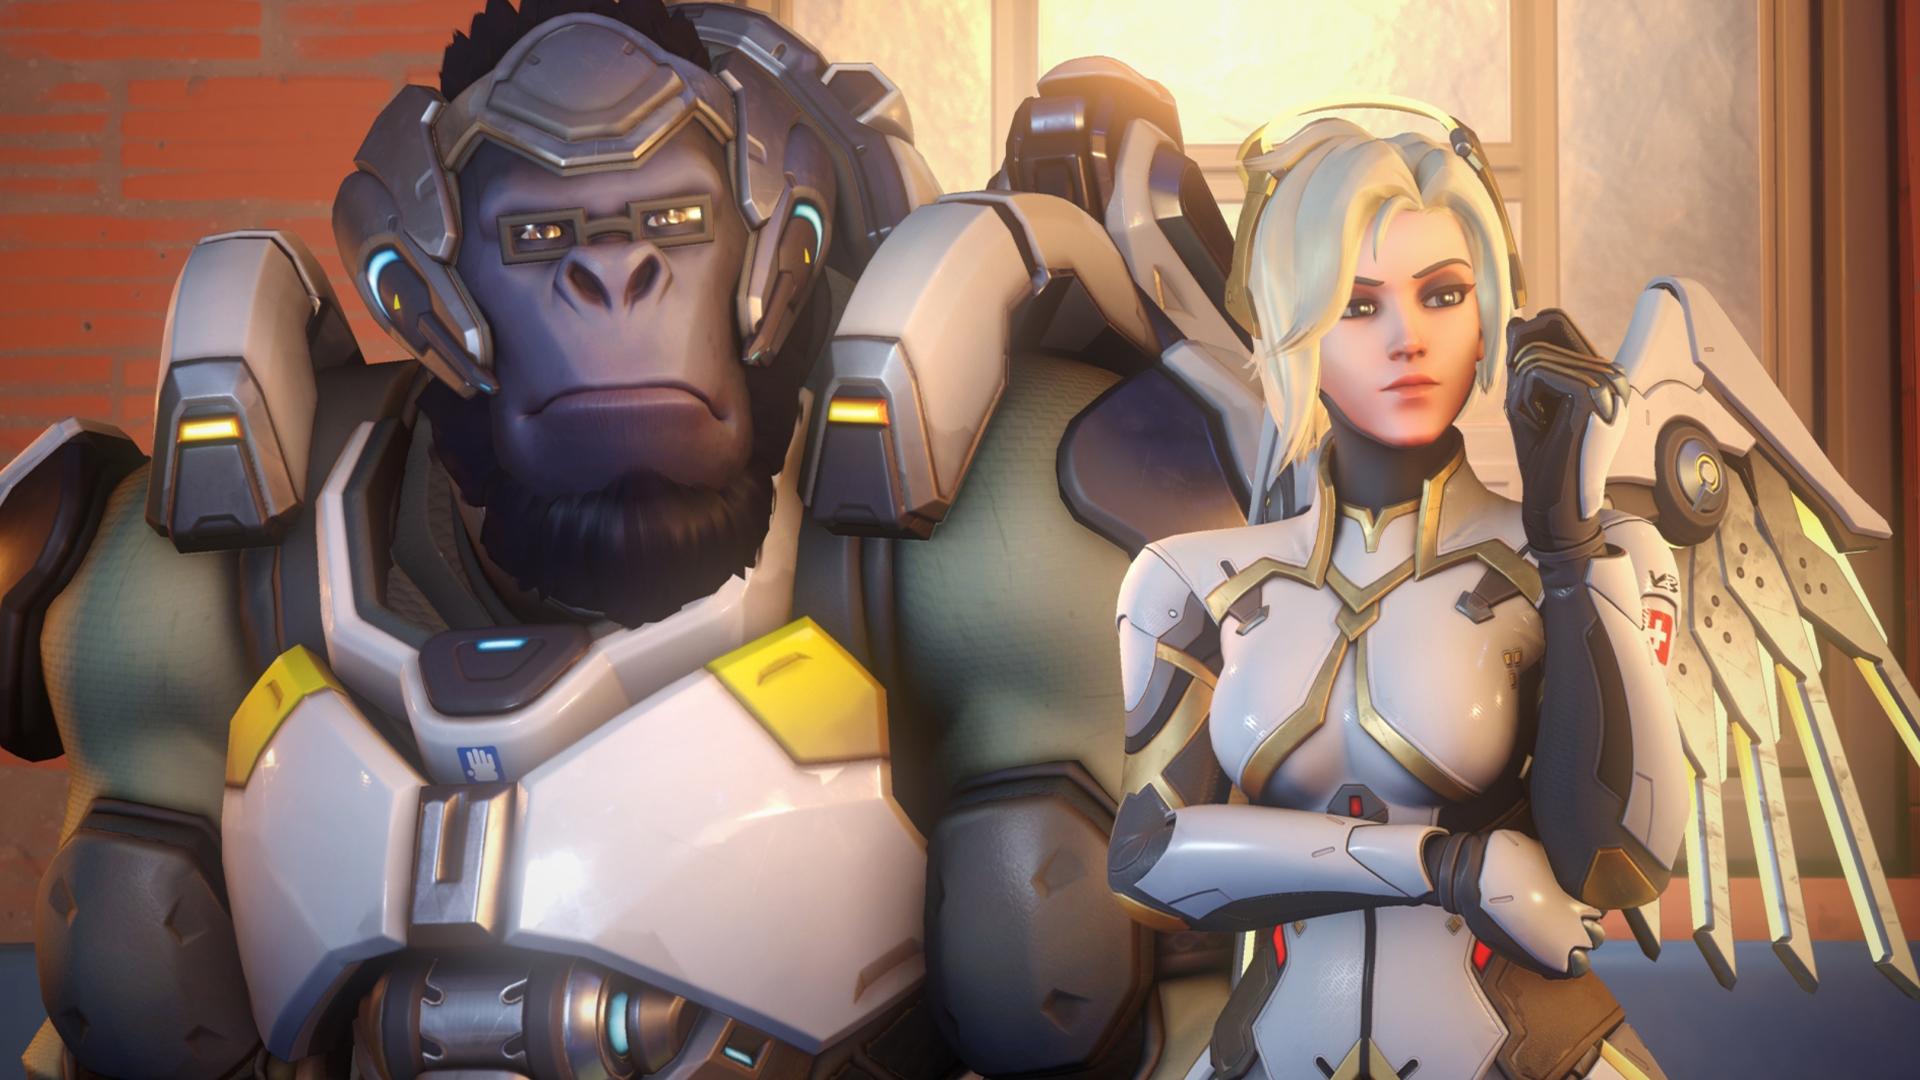 Overwatch 2: everything we know about Blizzard's next team-based shooter